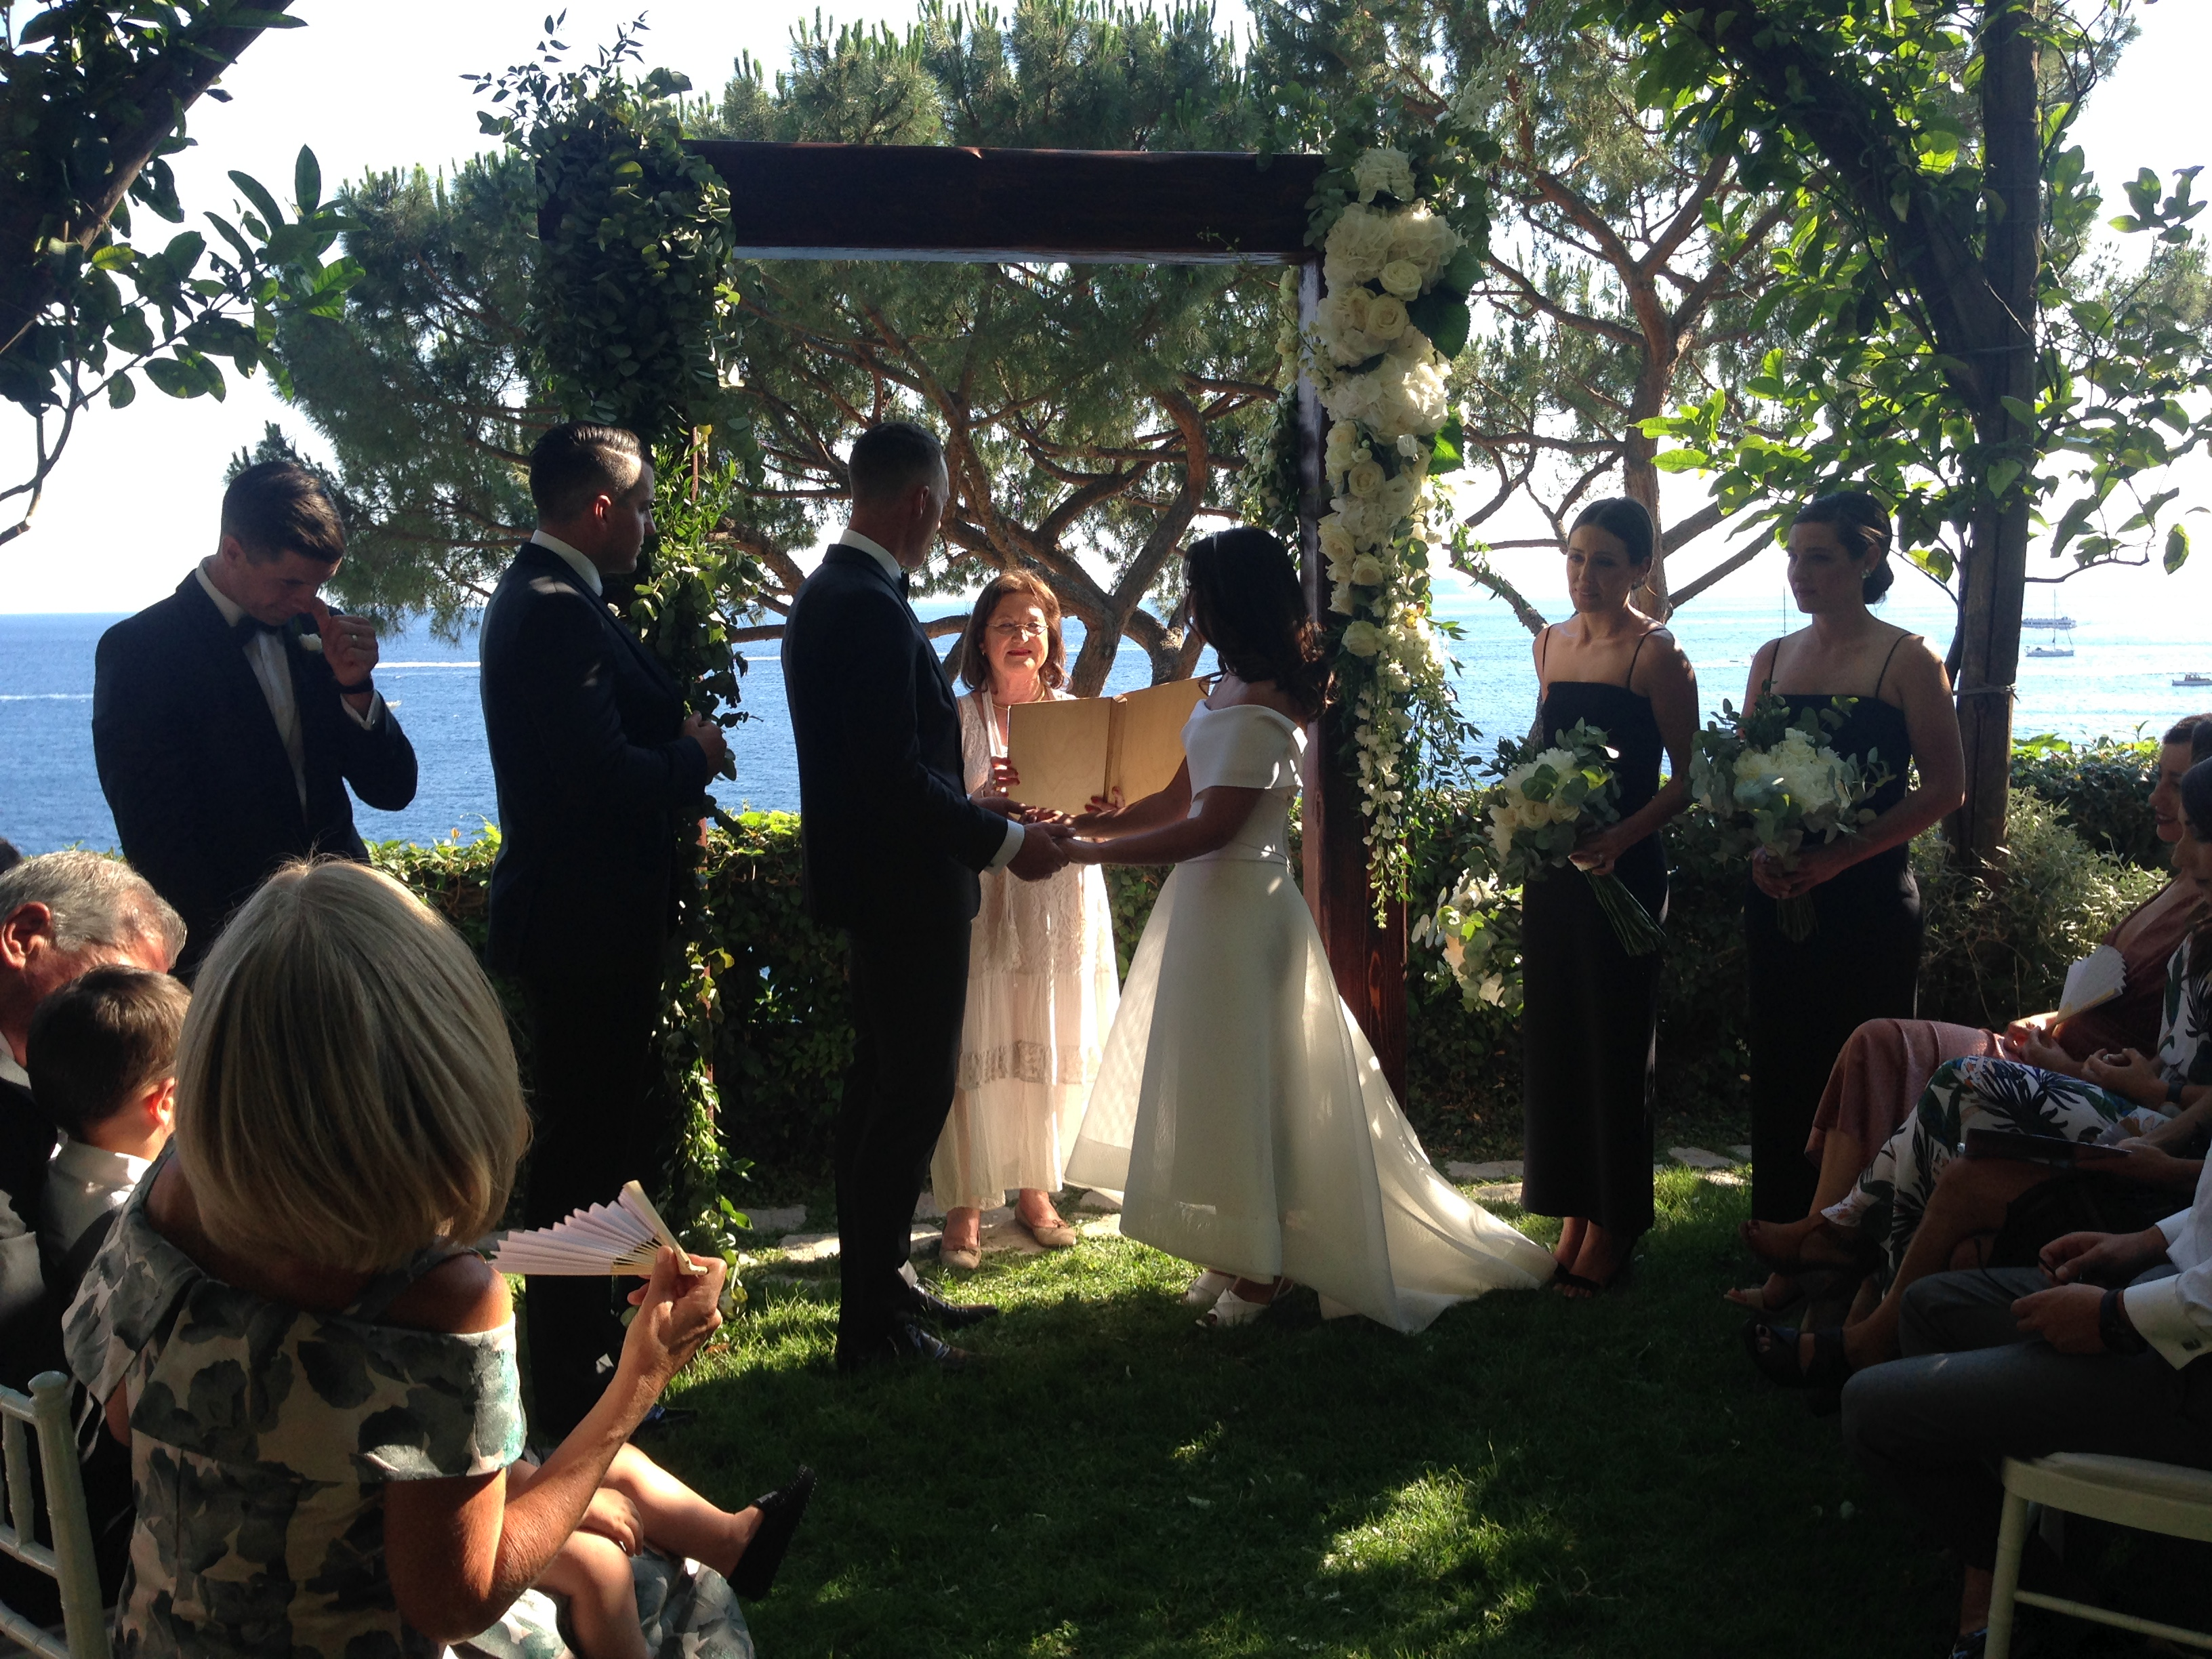 http://www.weddingamalfi.com/wp-content/uploads/Laura-and-Jarrod-seaside-wedding-ceremony-on-the-Amalfi-Coast.jpg